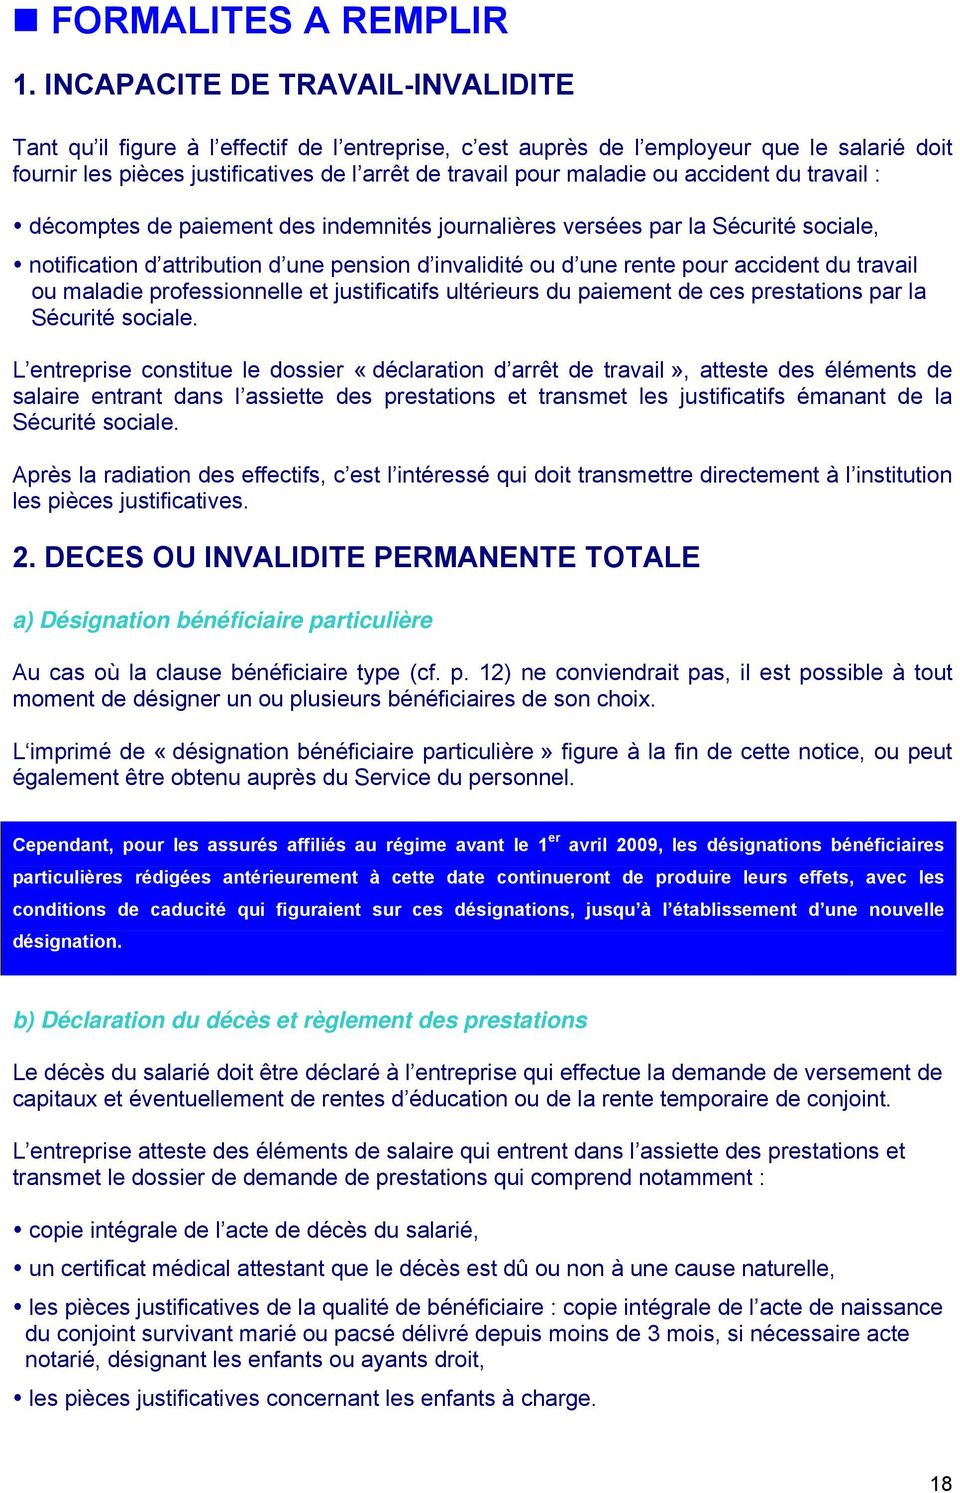 ou accident du travail : décomptes de paiement des indemnités journalières versées par la Sécurité sociale, notification d attribution d une pension d invalidité ou d une rente pour accident du